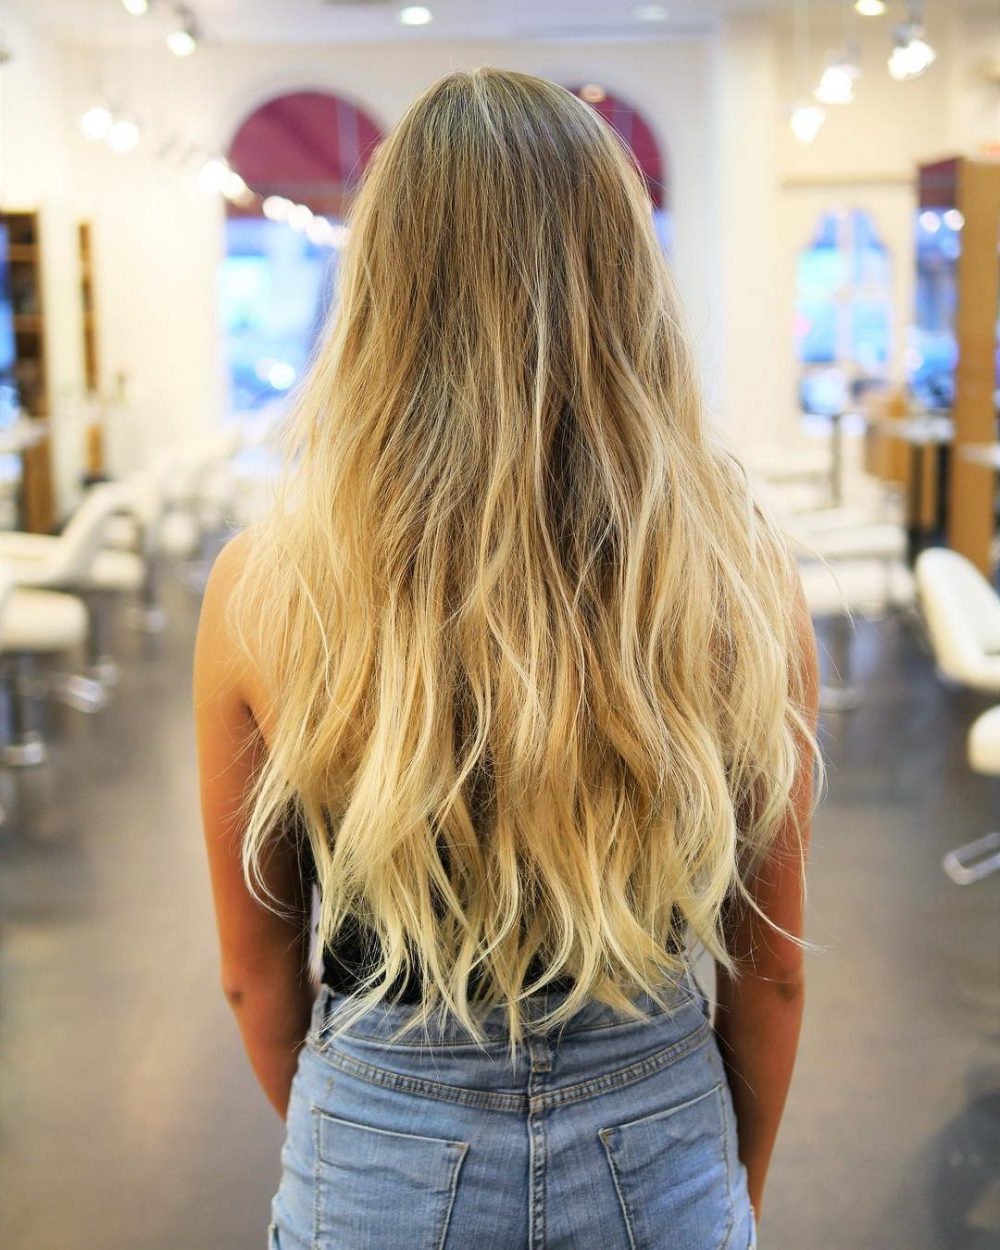 34 Cutest Long Layered Haircuts Trending In 2019 For Favorite Long Feathered Haircuts With Layers (View 15 of 20)